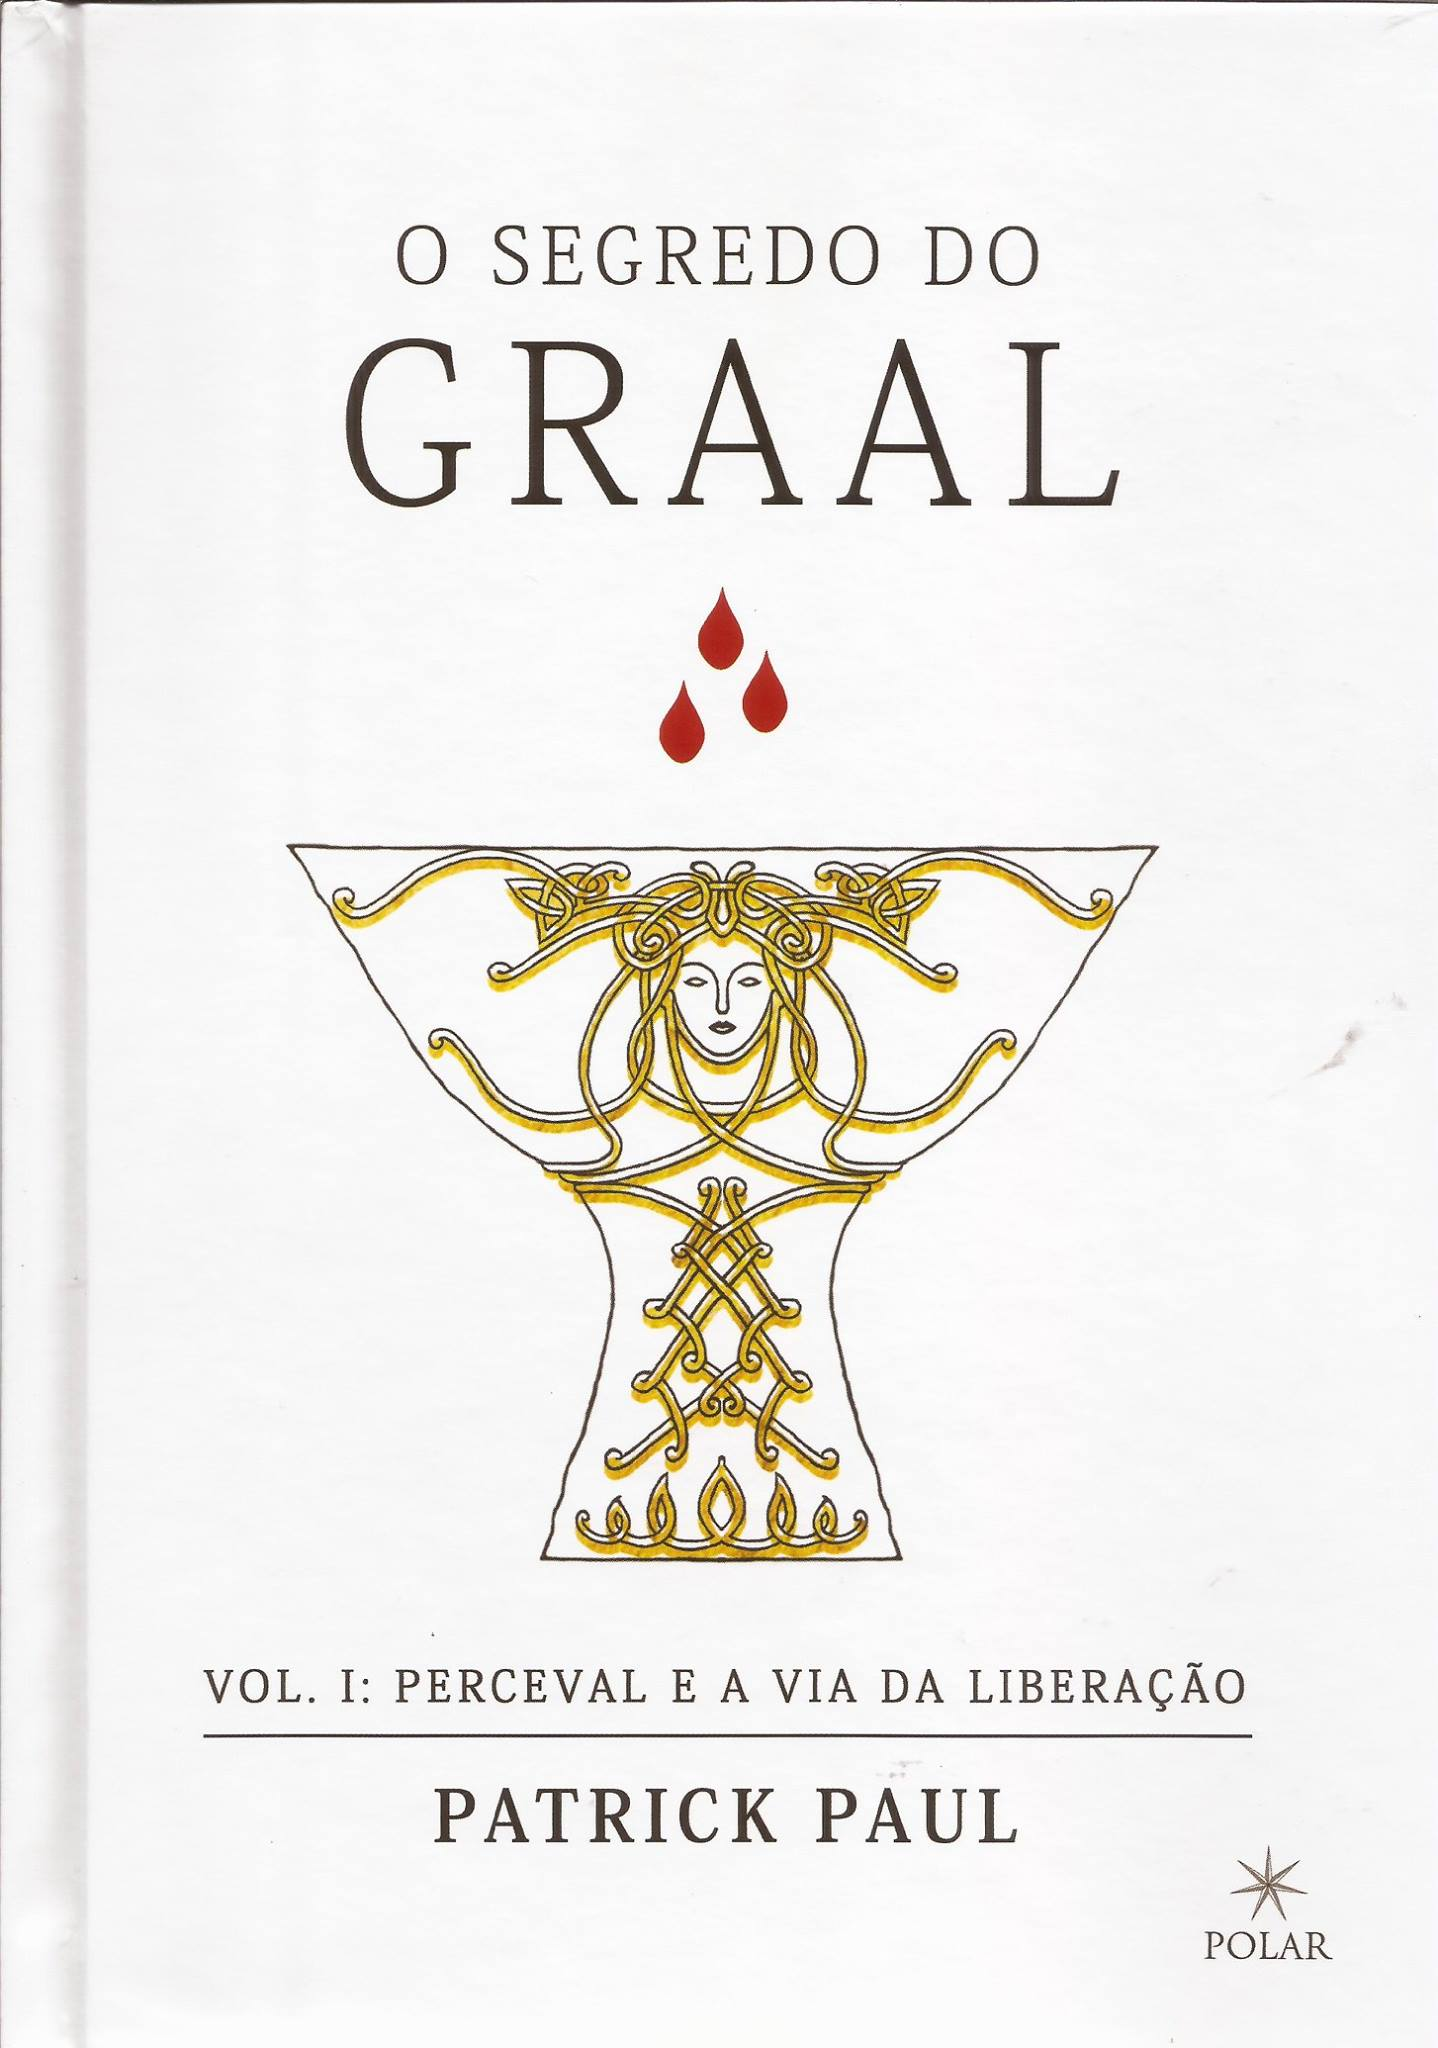 O SEGREDO DO GRAAL NEW